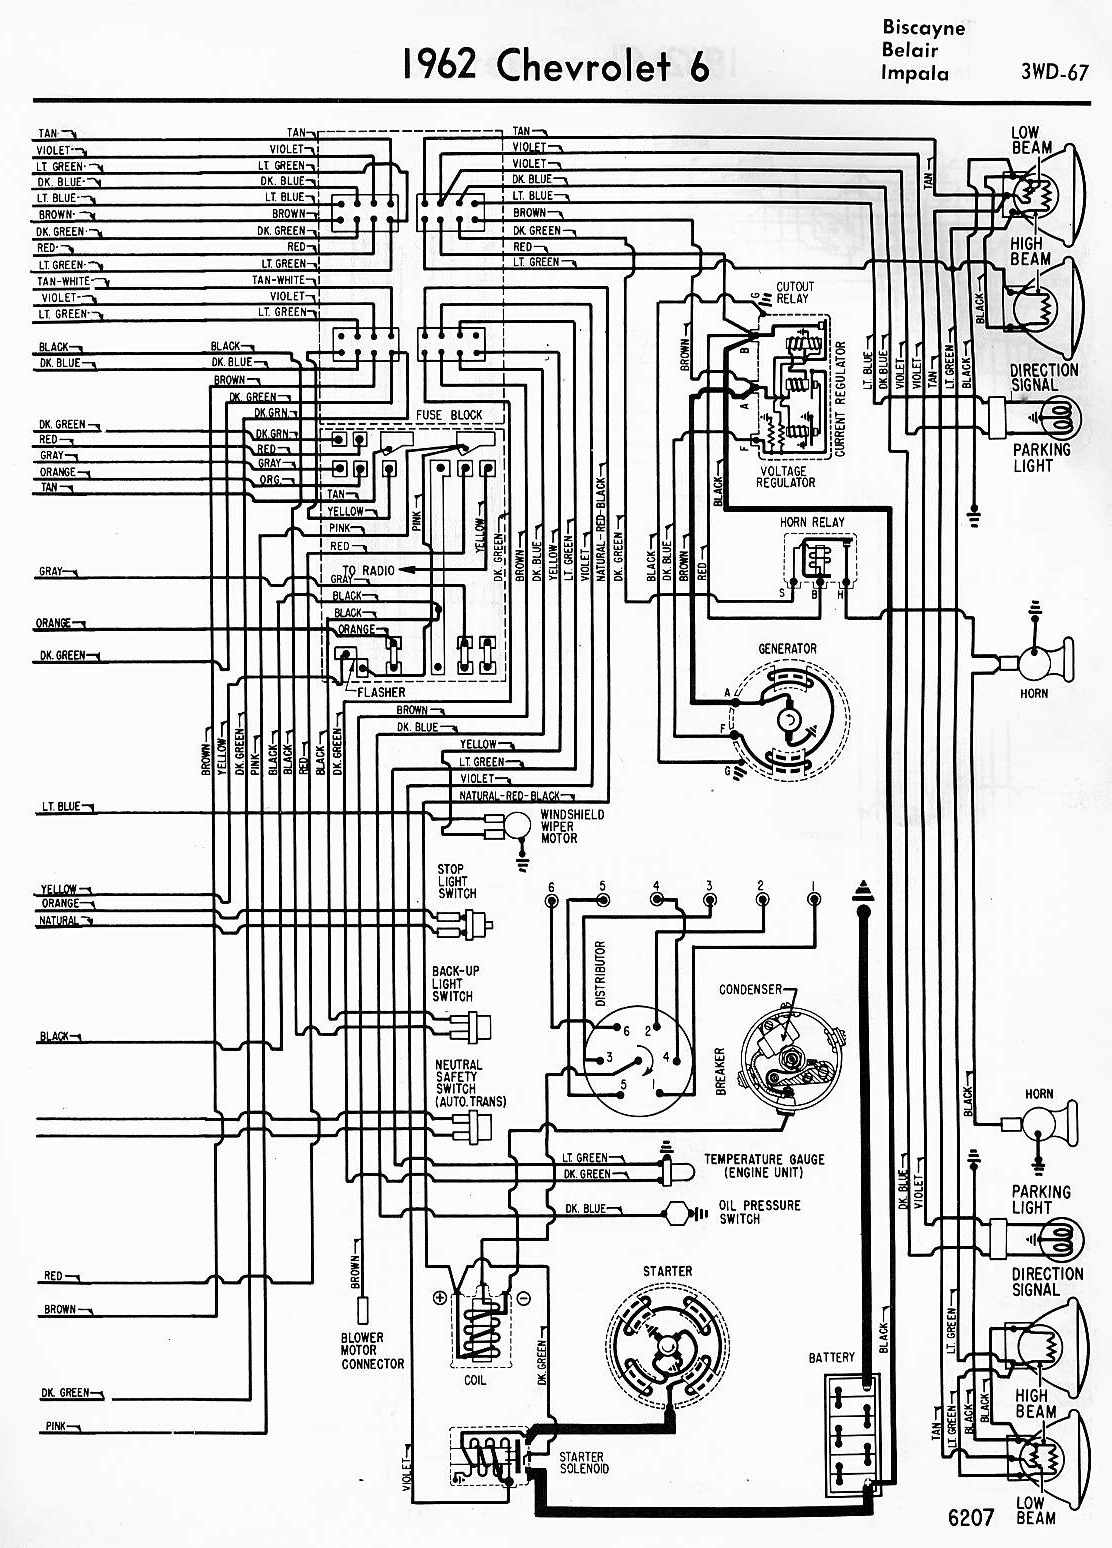 Electrical+Wiring+Diagram+Of+1964+Chevrolet+6 2005 chevy impala wiring diagram 2005 chevy express van wiring chevrolet 1966 impala wiring diagram at crackthecode.co